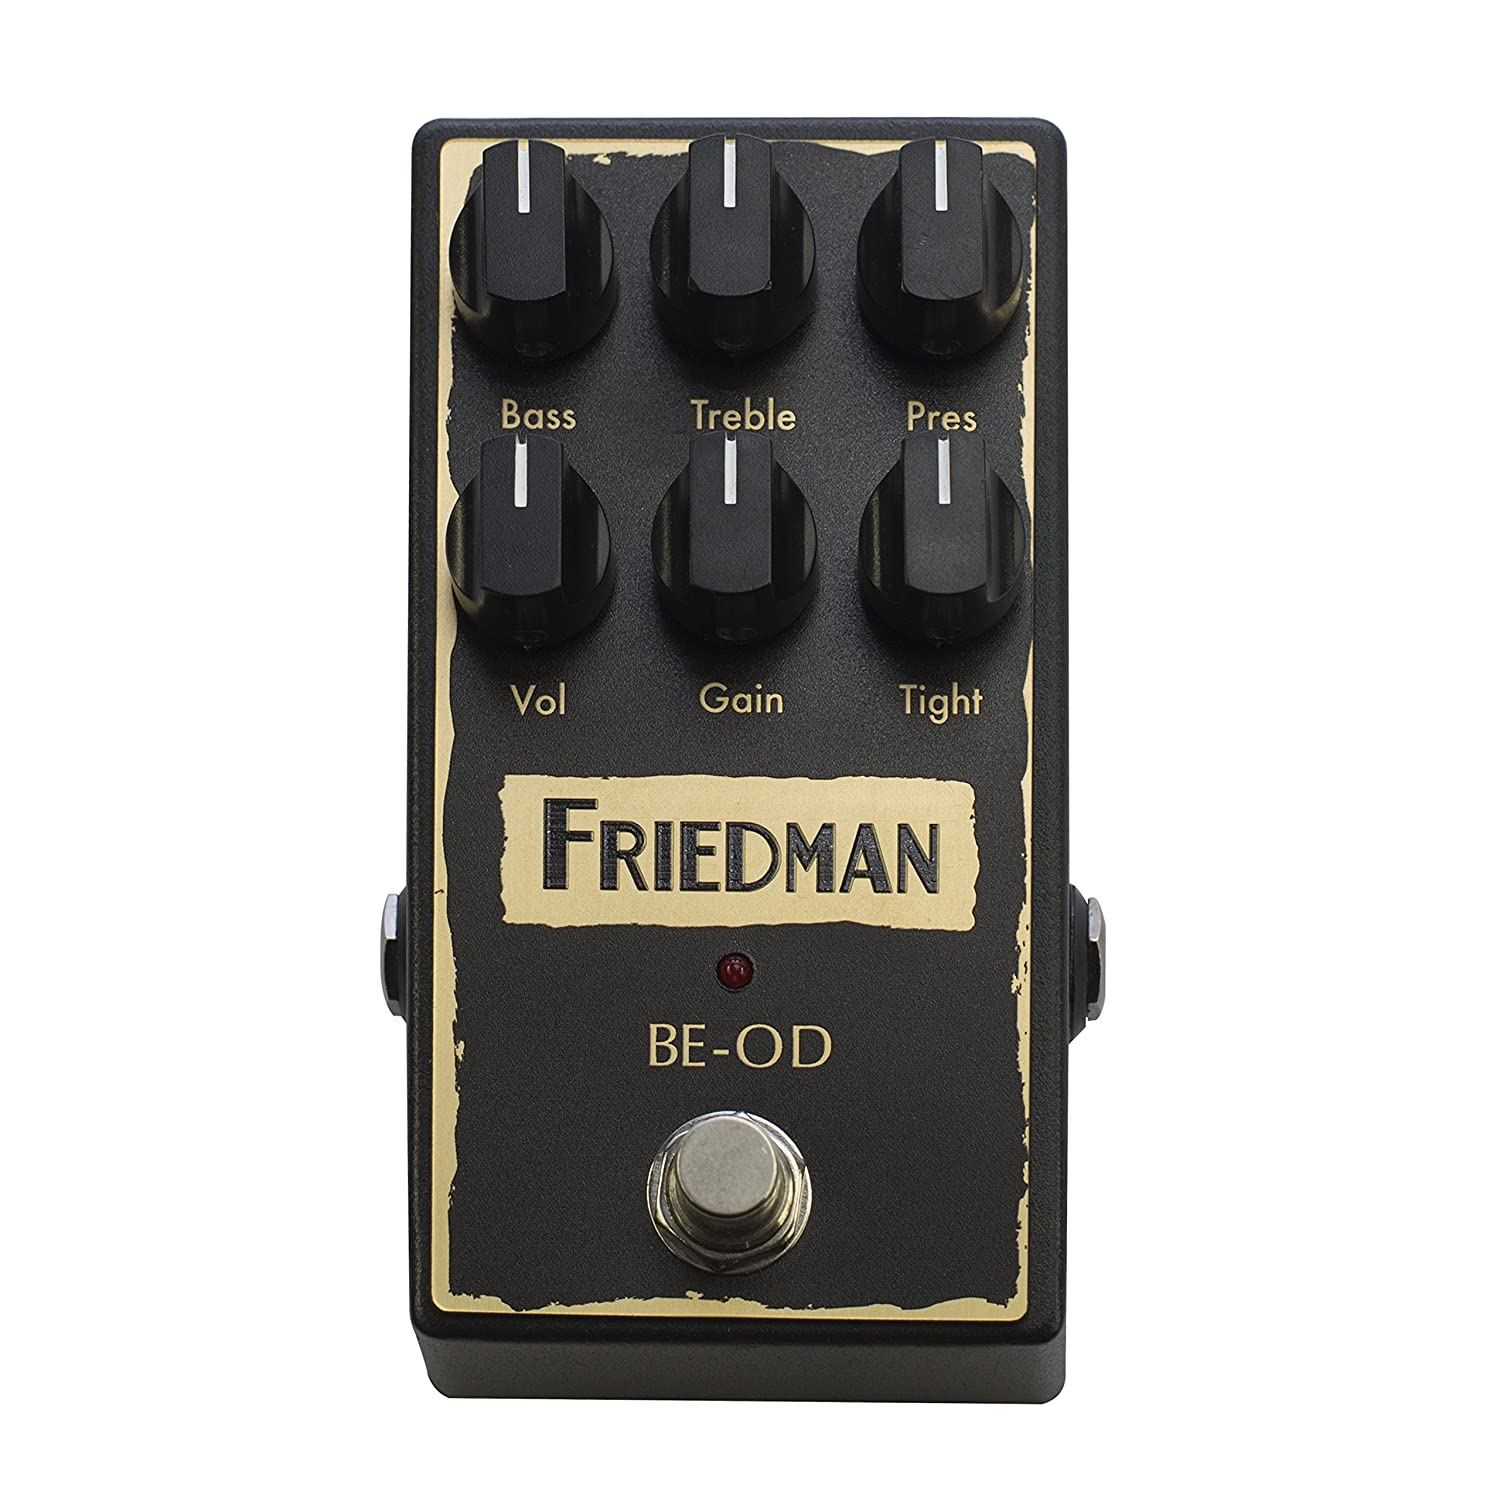 Friedman Amplification BE OD Overdrive Guitar Effects Pedal Amazon